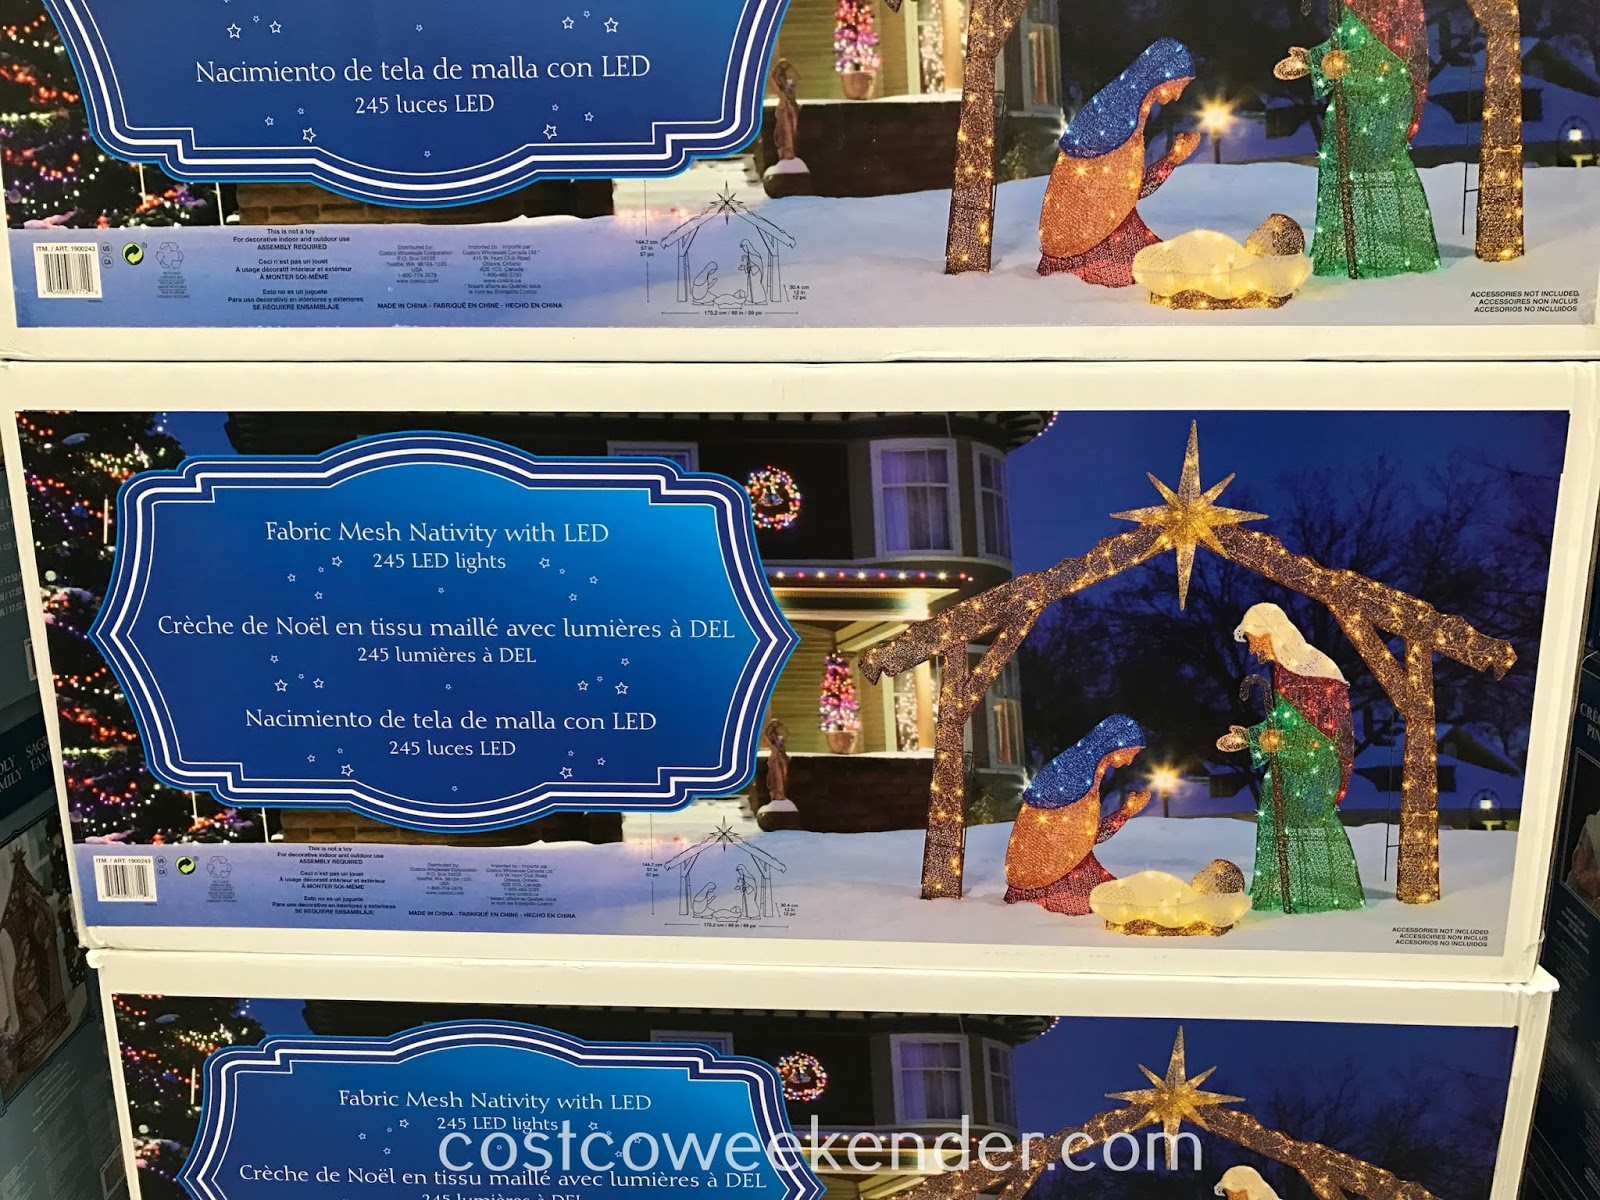 Costco 1900243 - Fabric Mesh Nativity with LED: festive and bright for Christmas